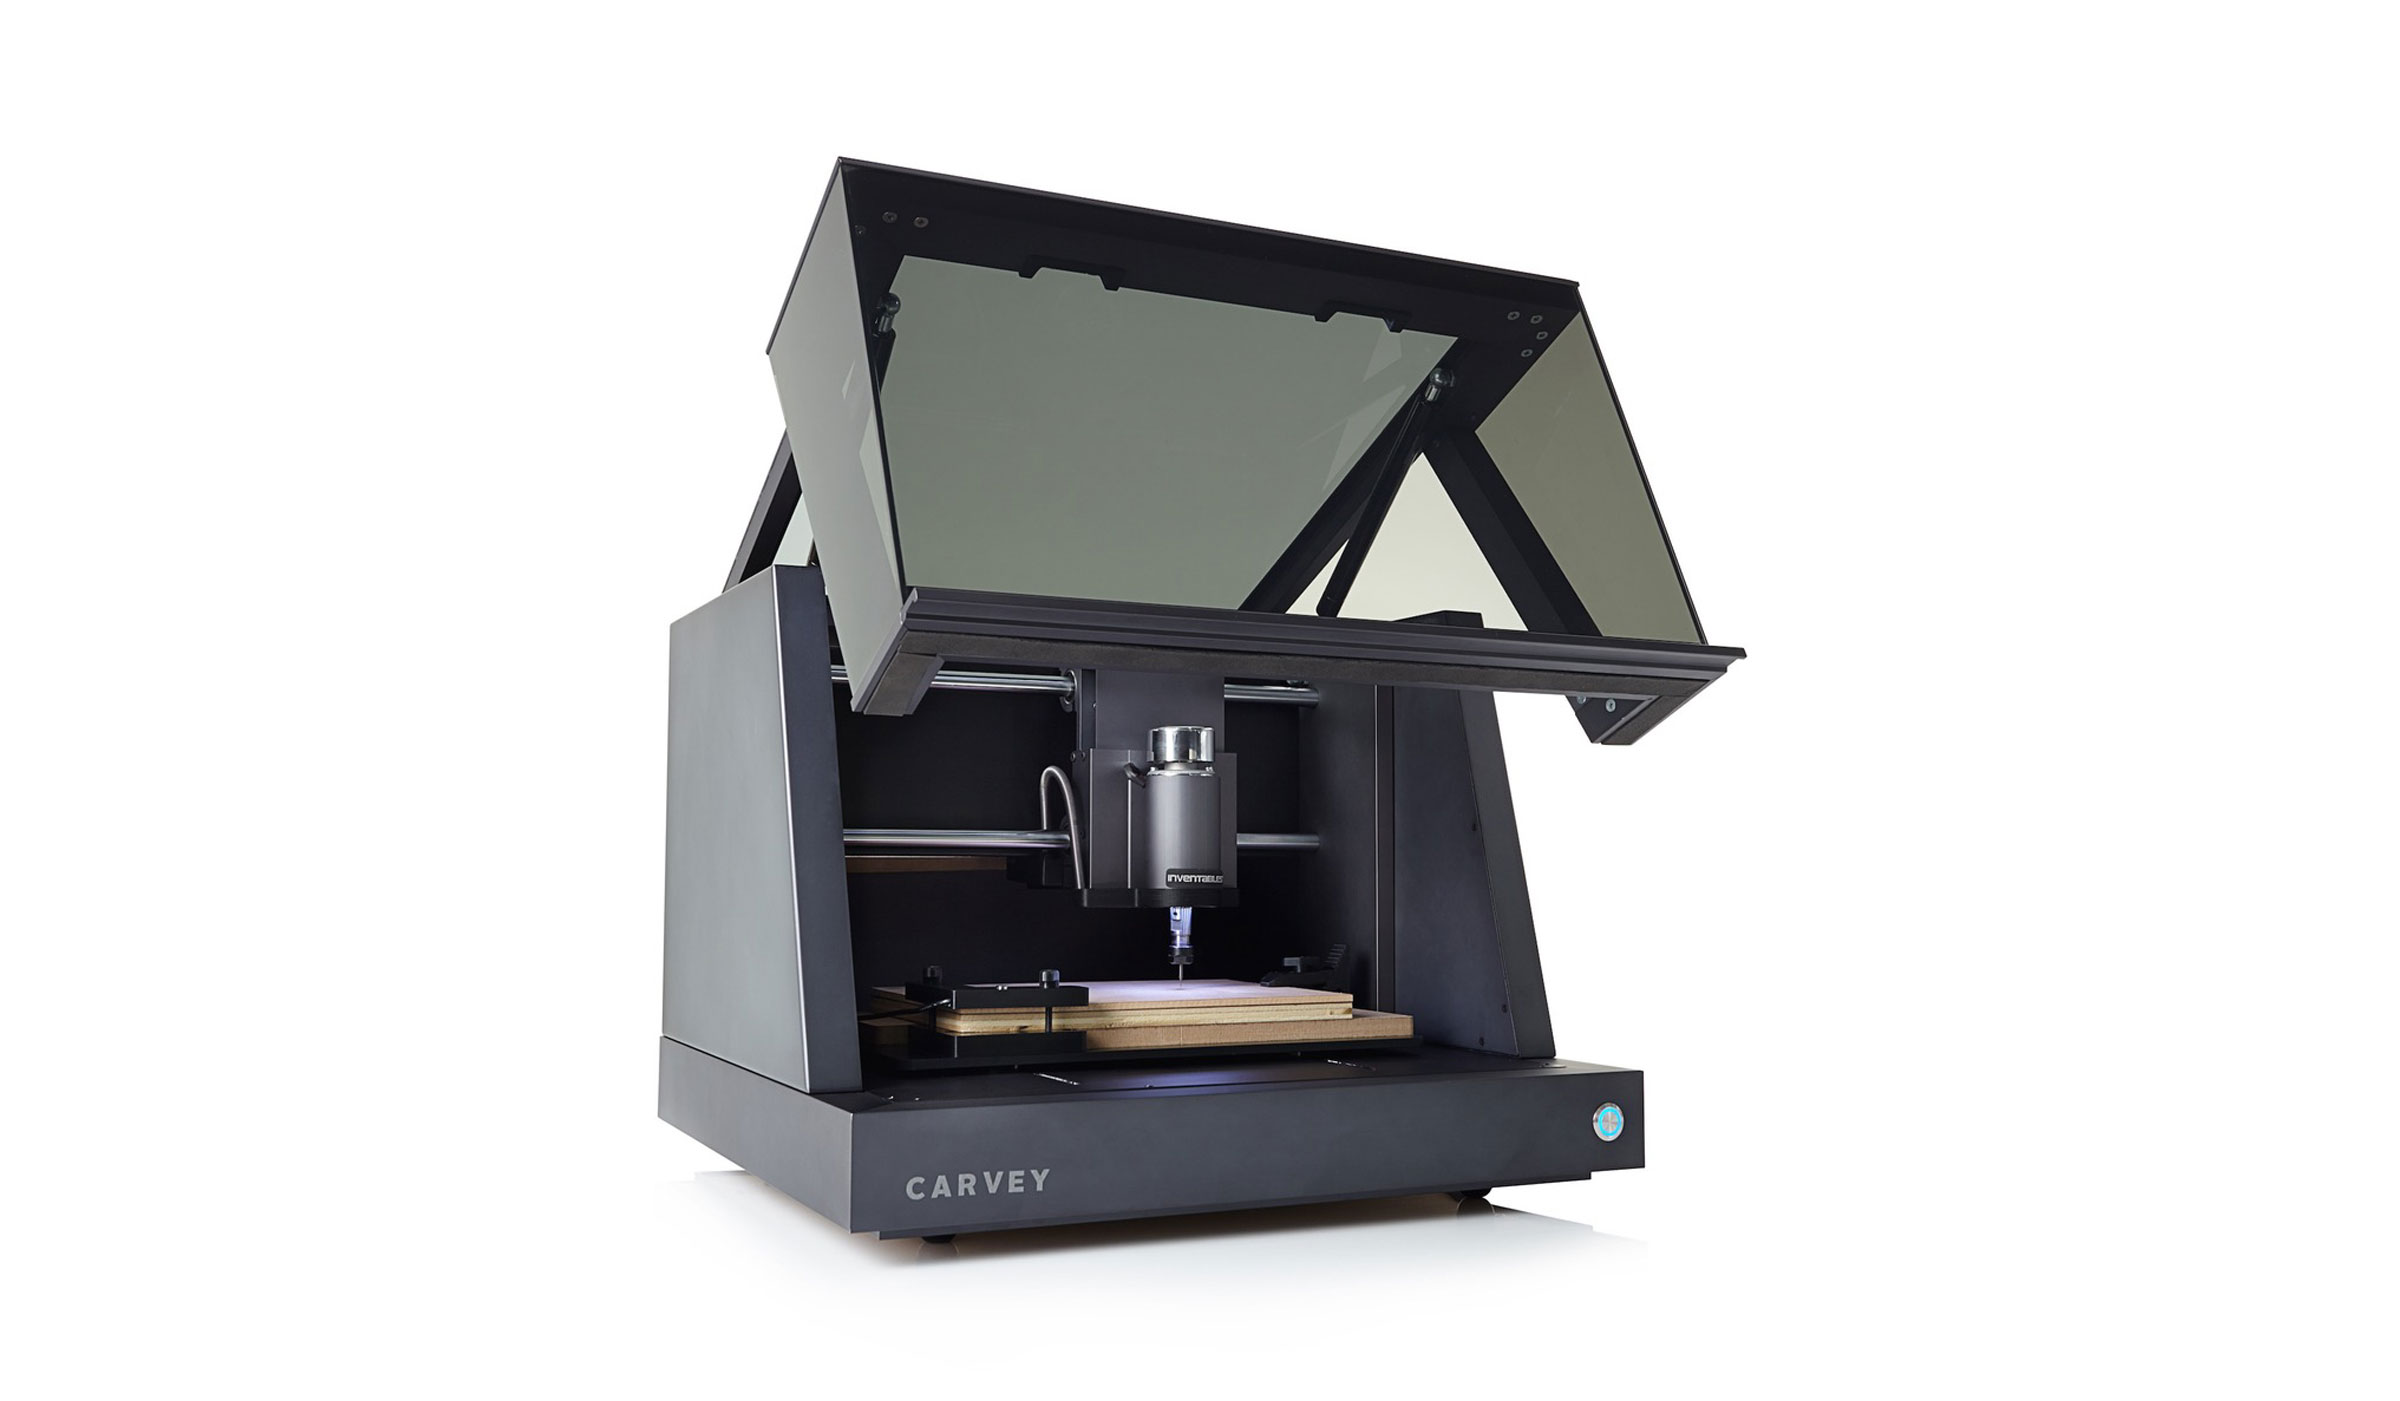 CARVEY 3D CARVING MACHINE